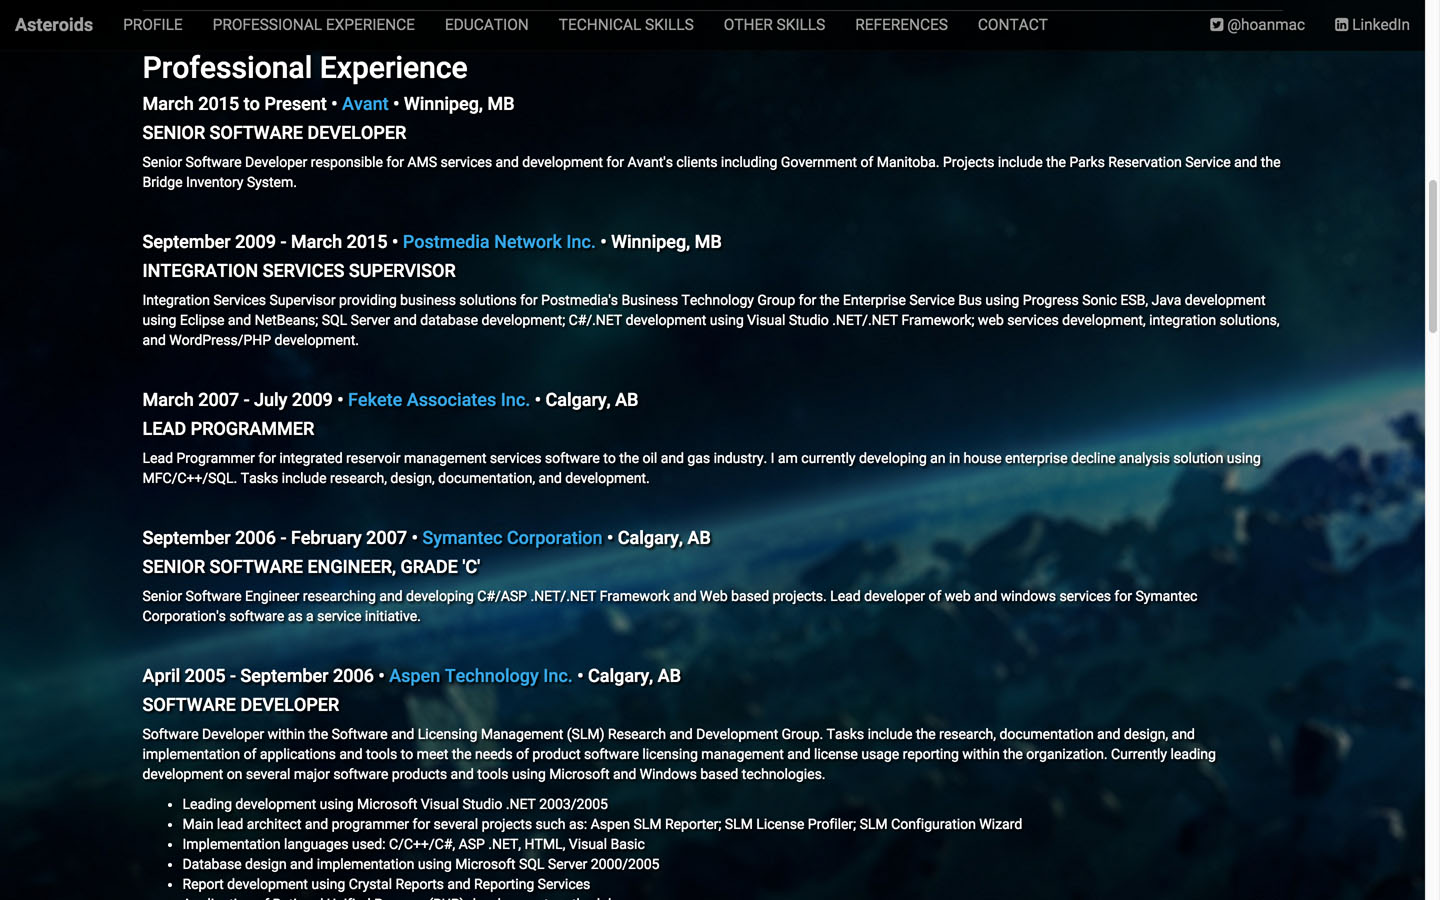 Professional Experience Page